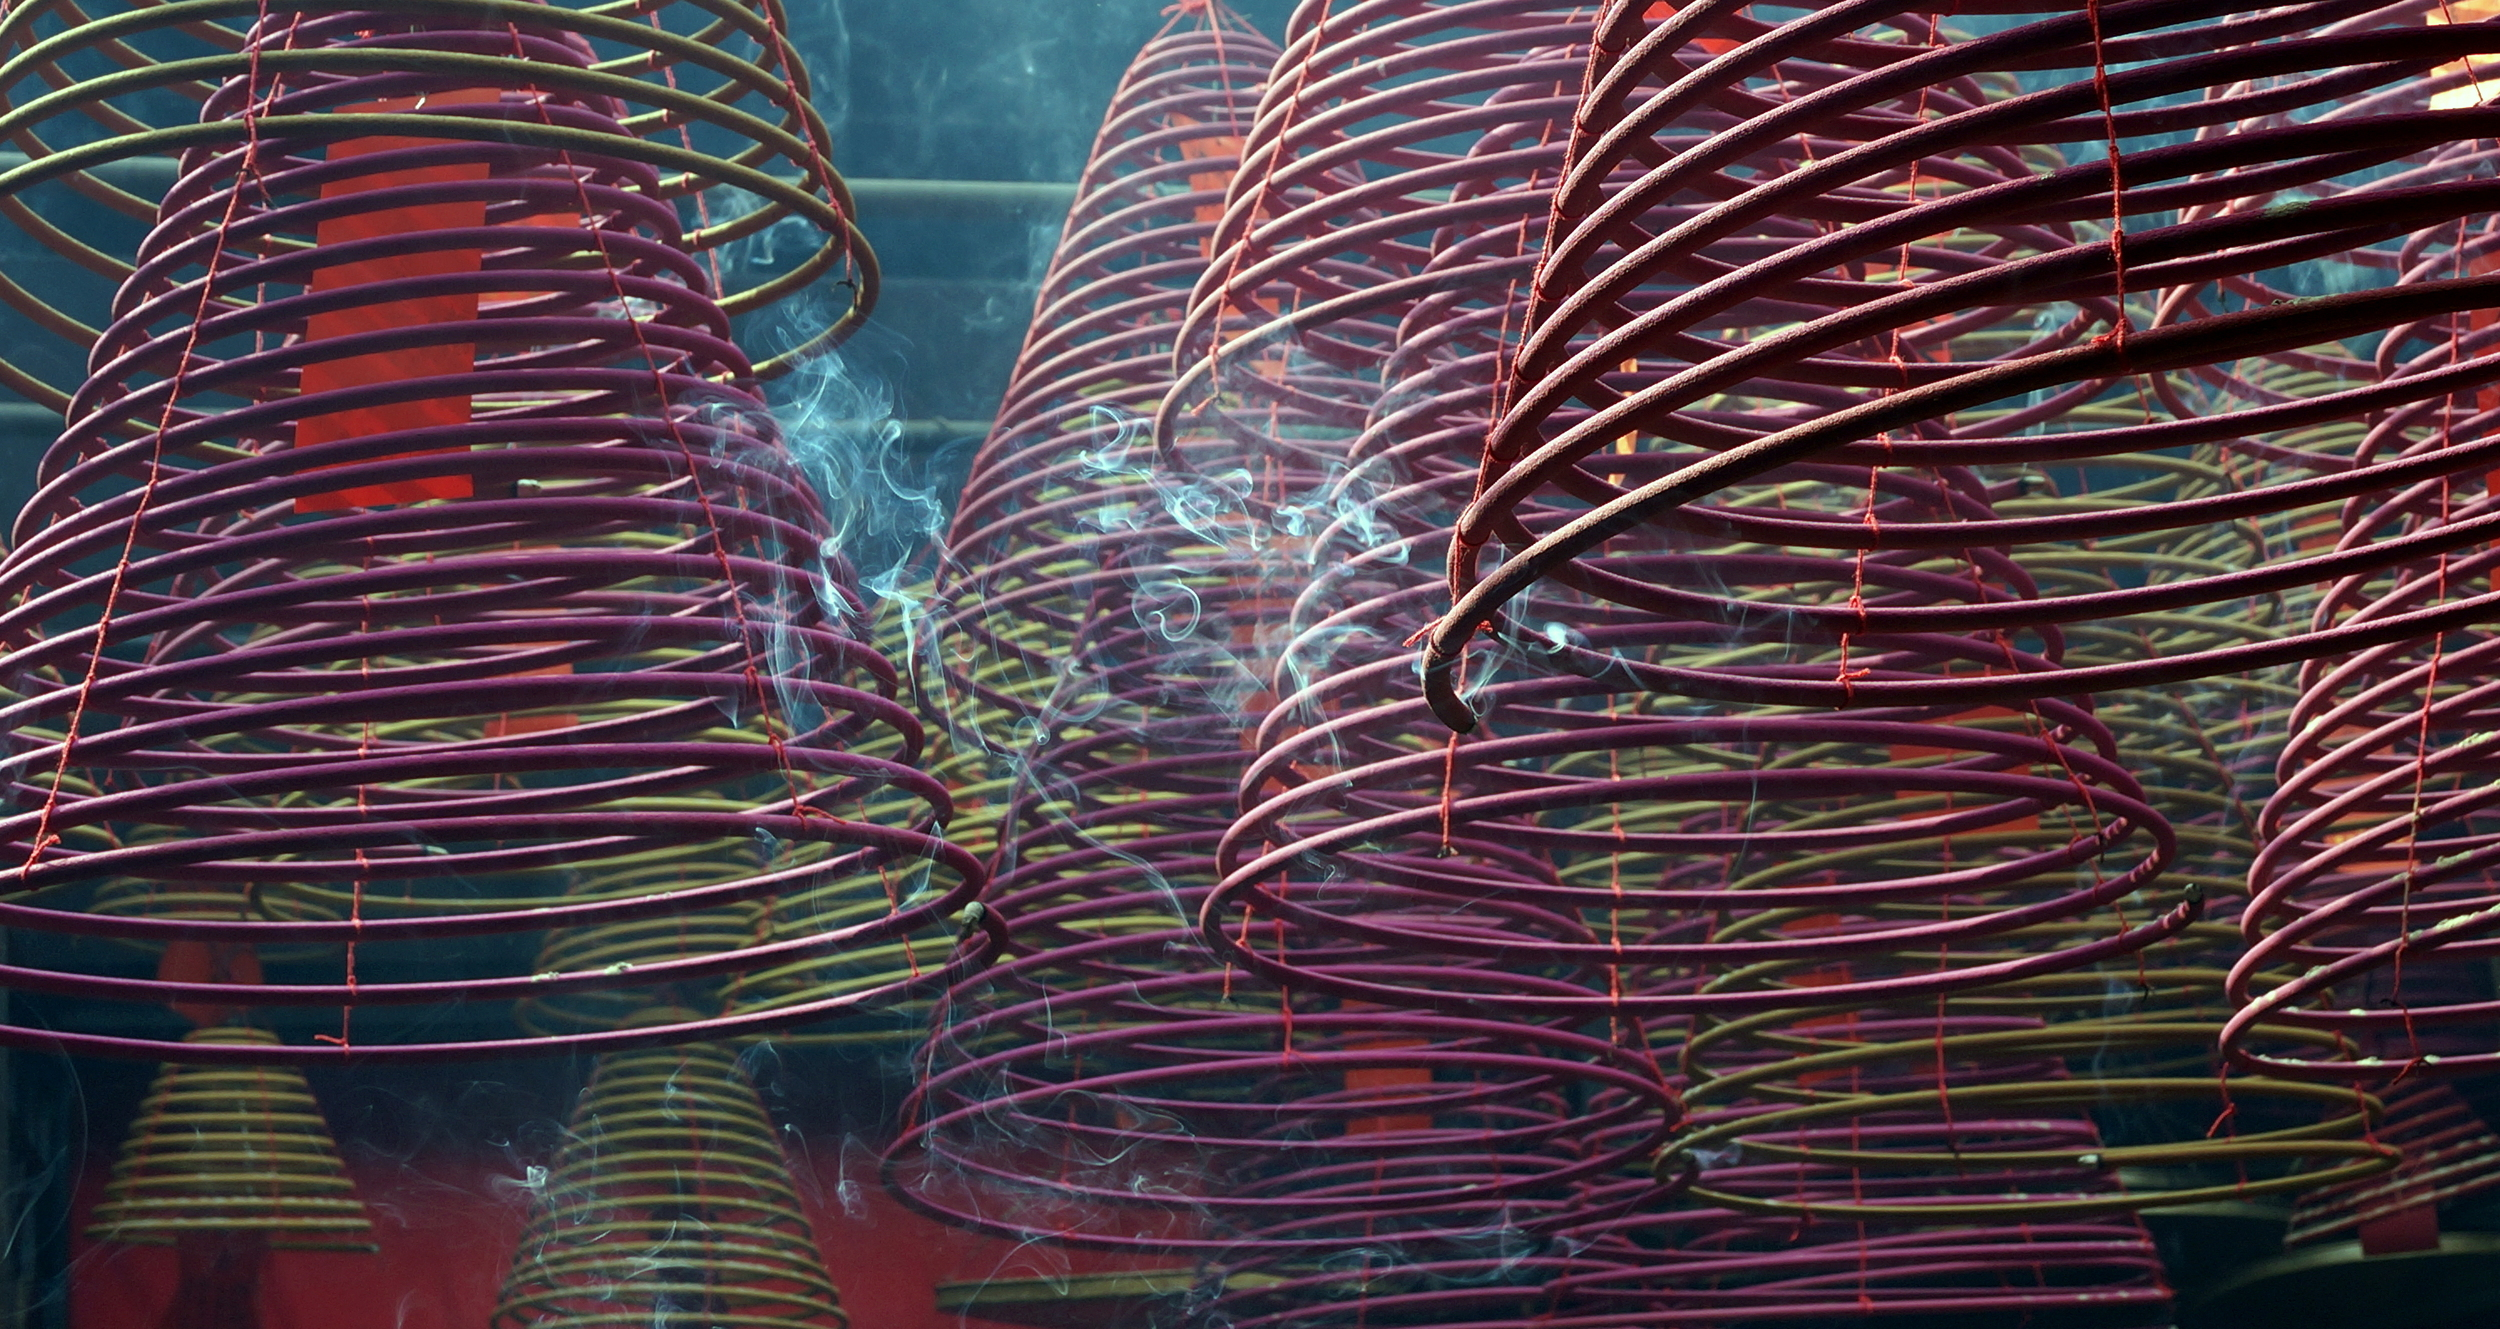 These suckers burn for over a week and you can see them at the Tin Hau Temple on Temple Street in Yaumatei.